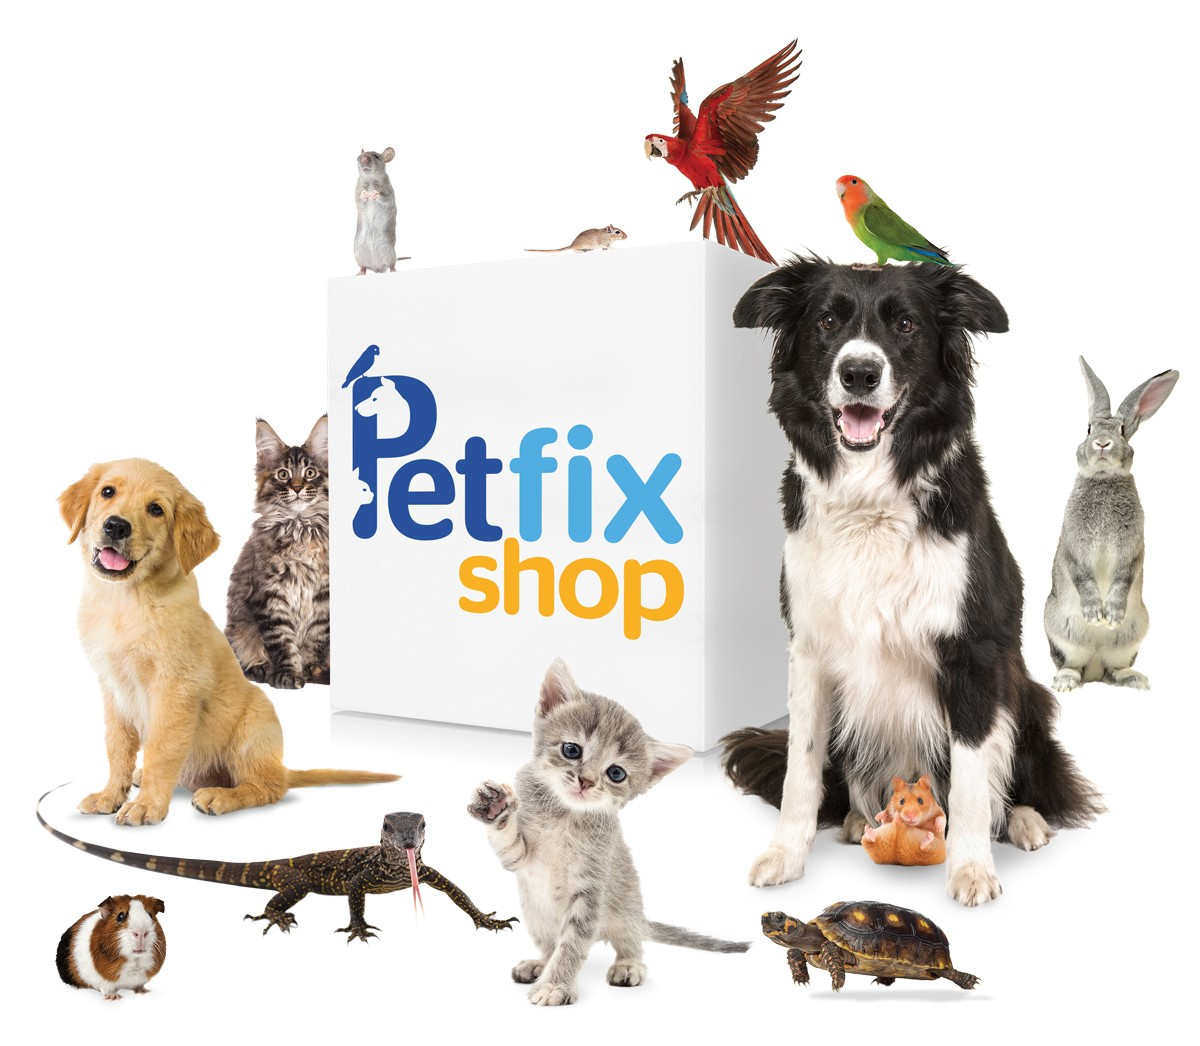 petfix shop cube with animals